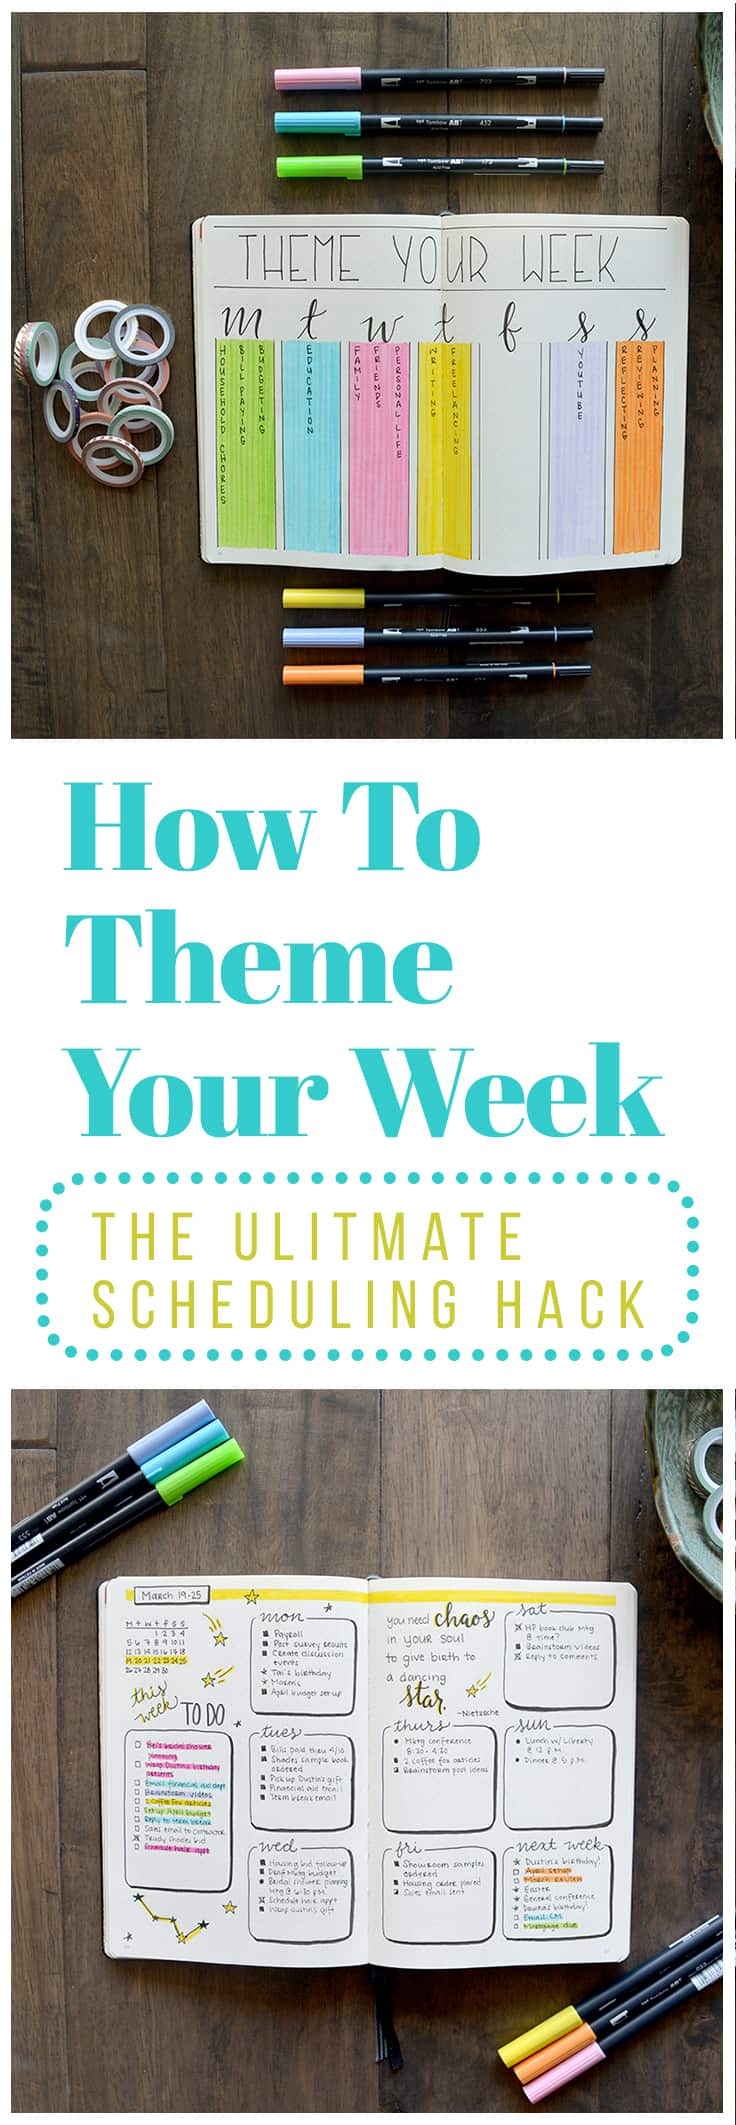 Theming your week is easy.  1.	Choose your themes: You know better than anyone else which time and attention. 2.	Assign your themes to days of the week 3.	Add your themes to your schedule: I chose to do this by creating one color-coded key page with all of my themes written out. 4.	Reevaluate as needed: You may find as you go that you've chosen a theme for which you actually don't have all that much to do.  Just click the image to learn more.